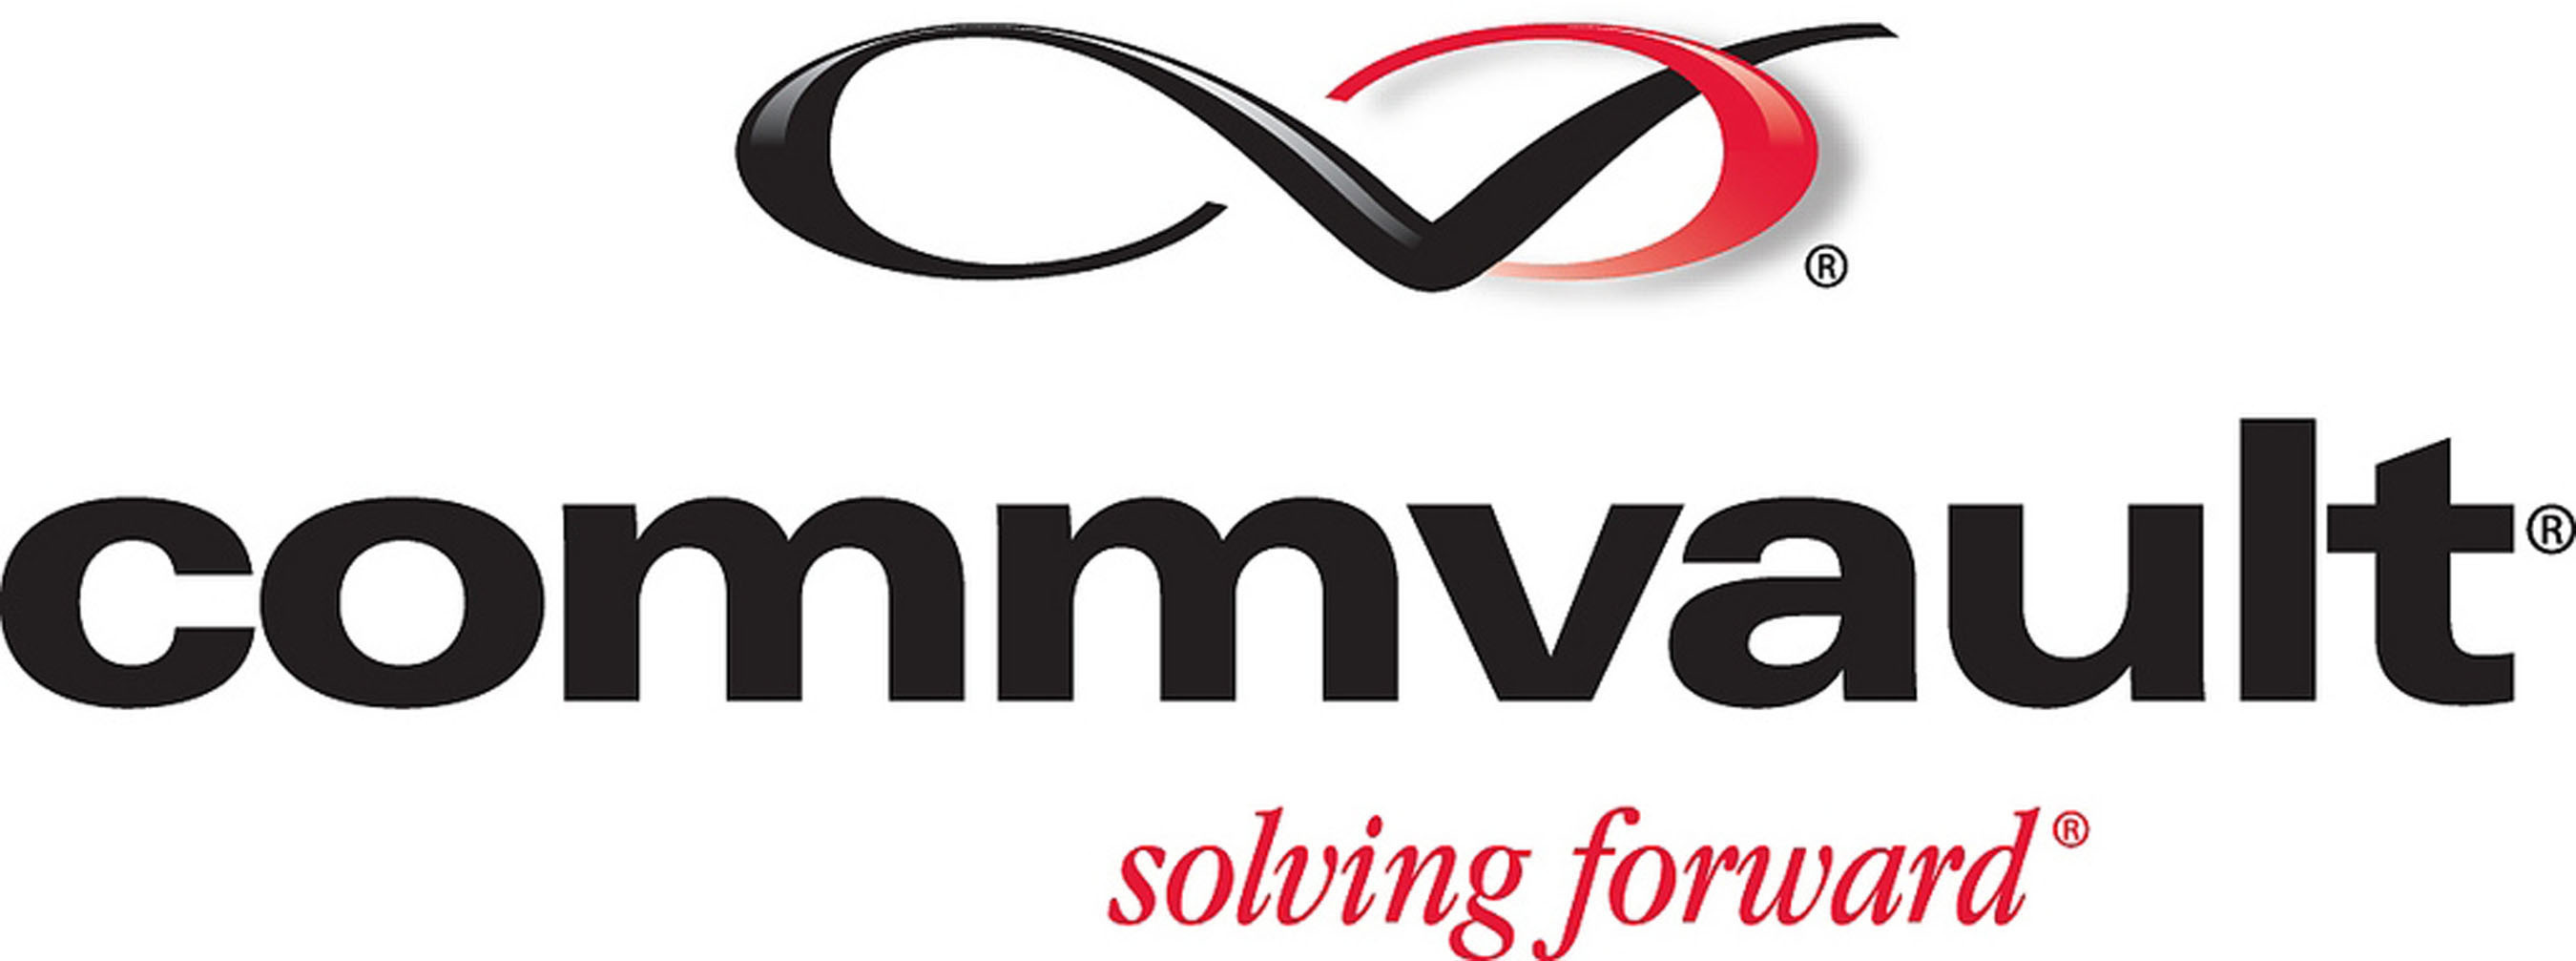 CommVault the leader in modern data and information management software